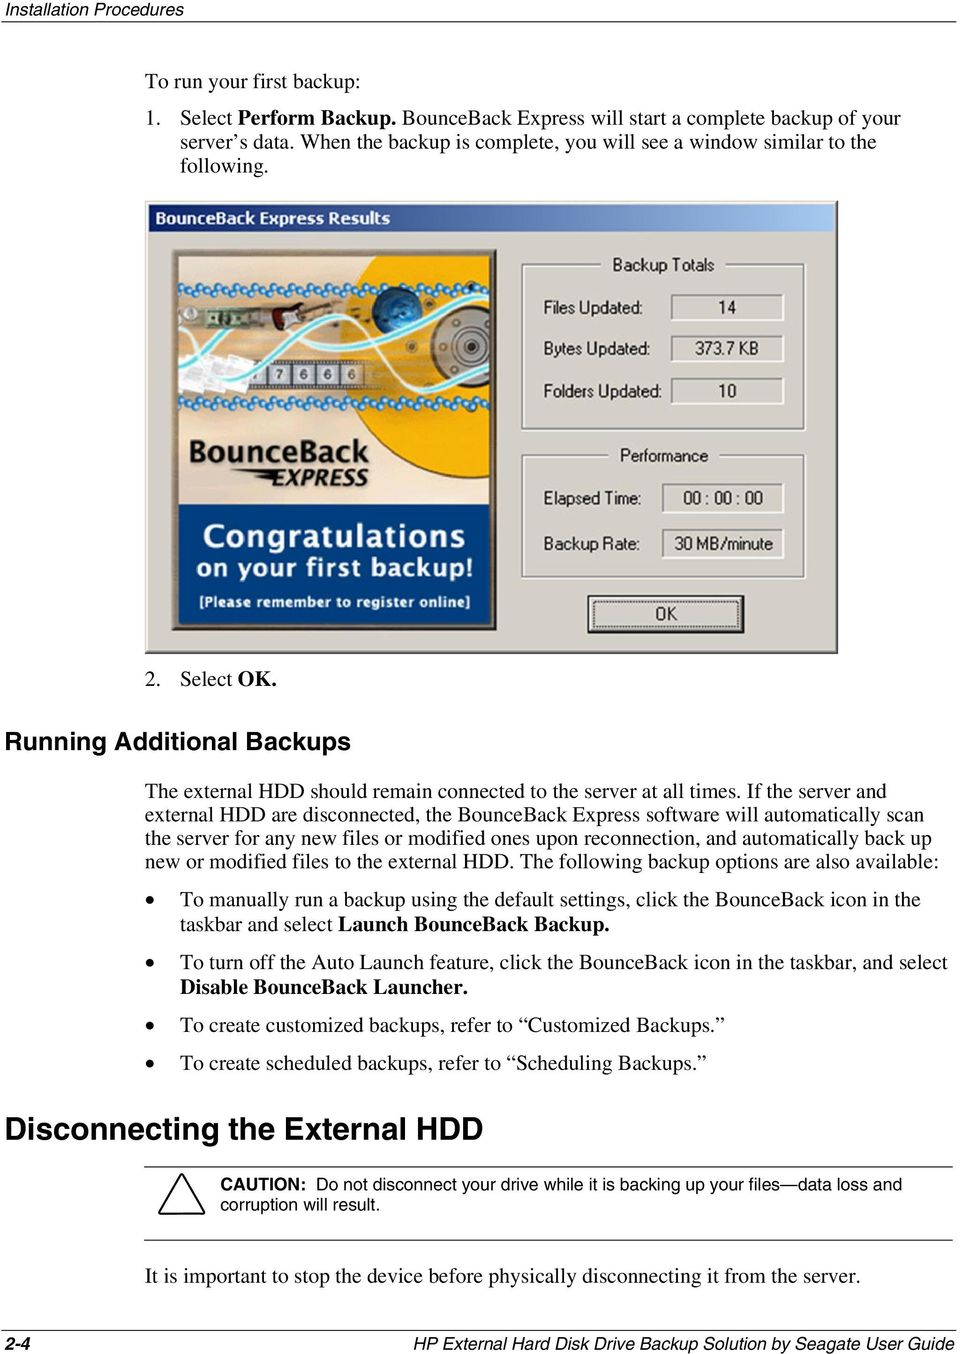 If the server and external HDD are disconnected, the BounceBack Express software will automatically scan the server for any new files or modified ones upon reconnection, and automatically back up new